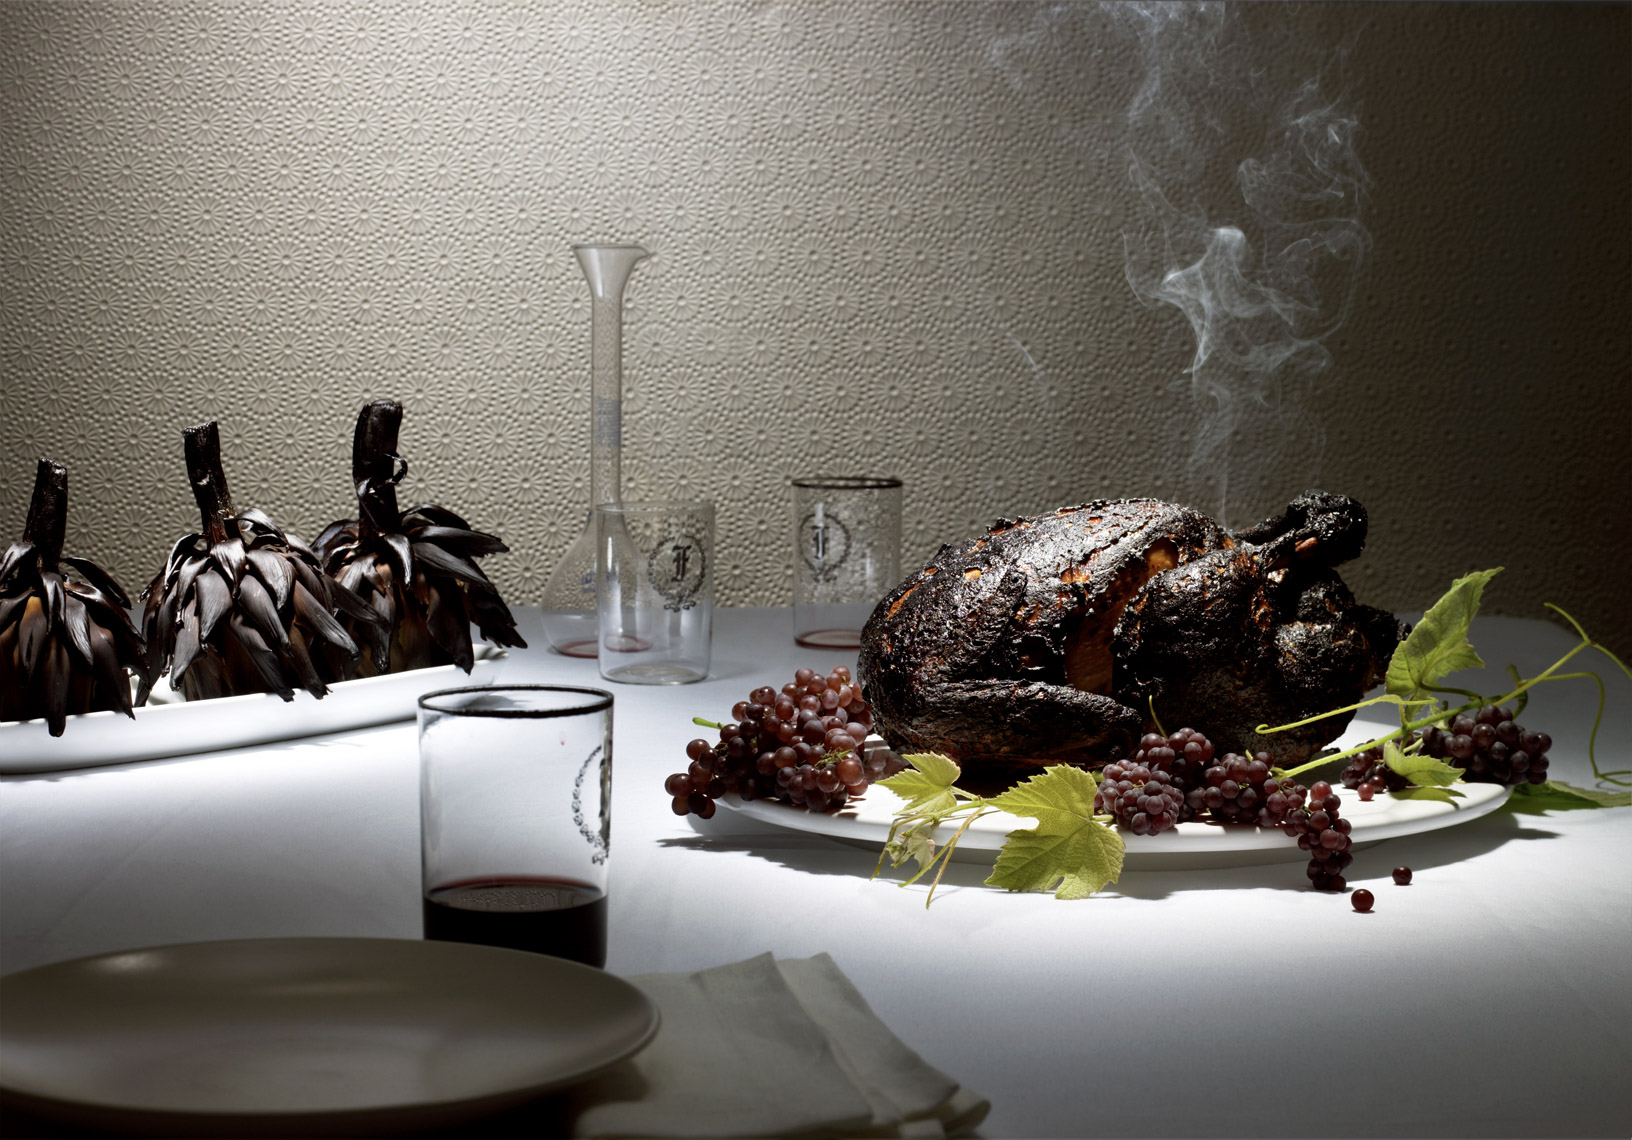 Robyn Valarik San Francisco Based Food & Drink Stylist - Burnt, turkey, platter, smoke, charred, black, garnish, thanksgiving, white, conceptual, art, poultry, food-photography